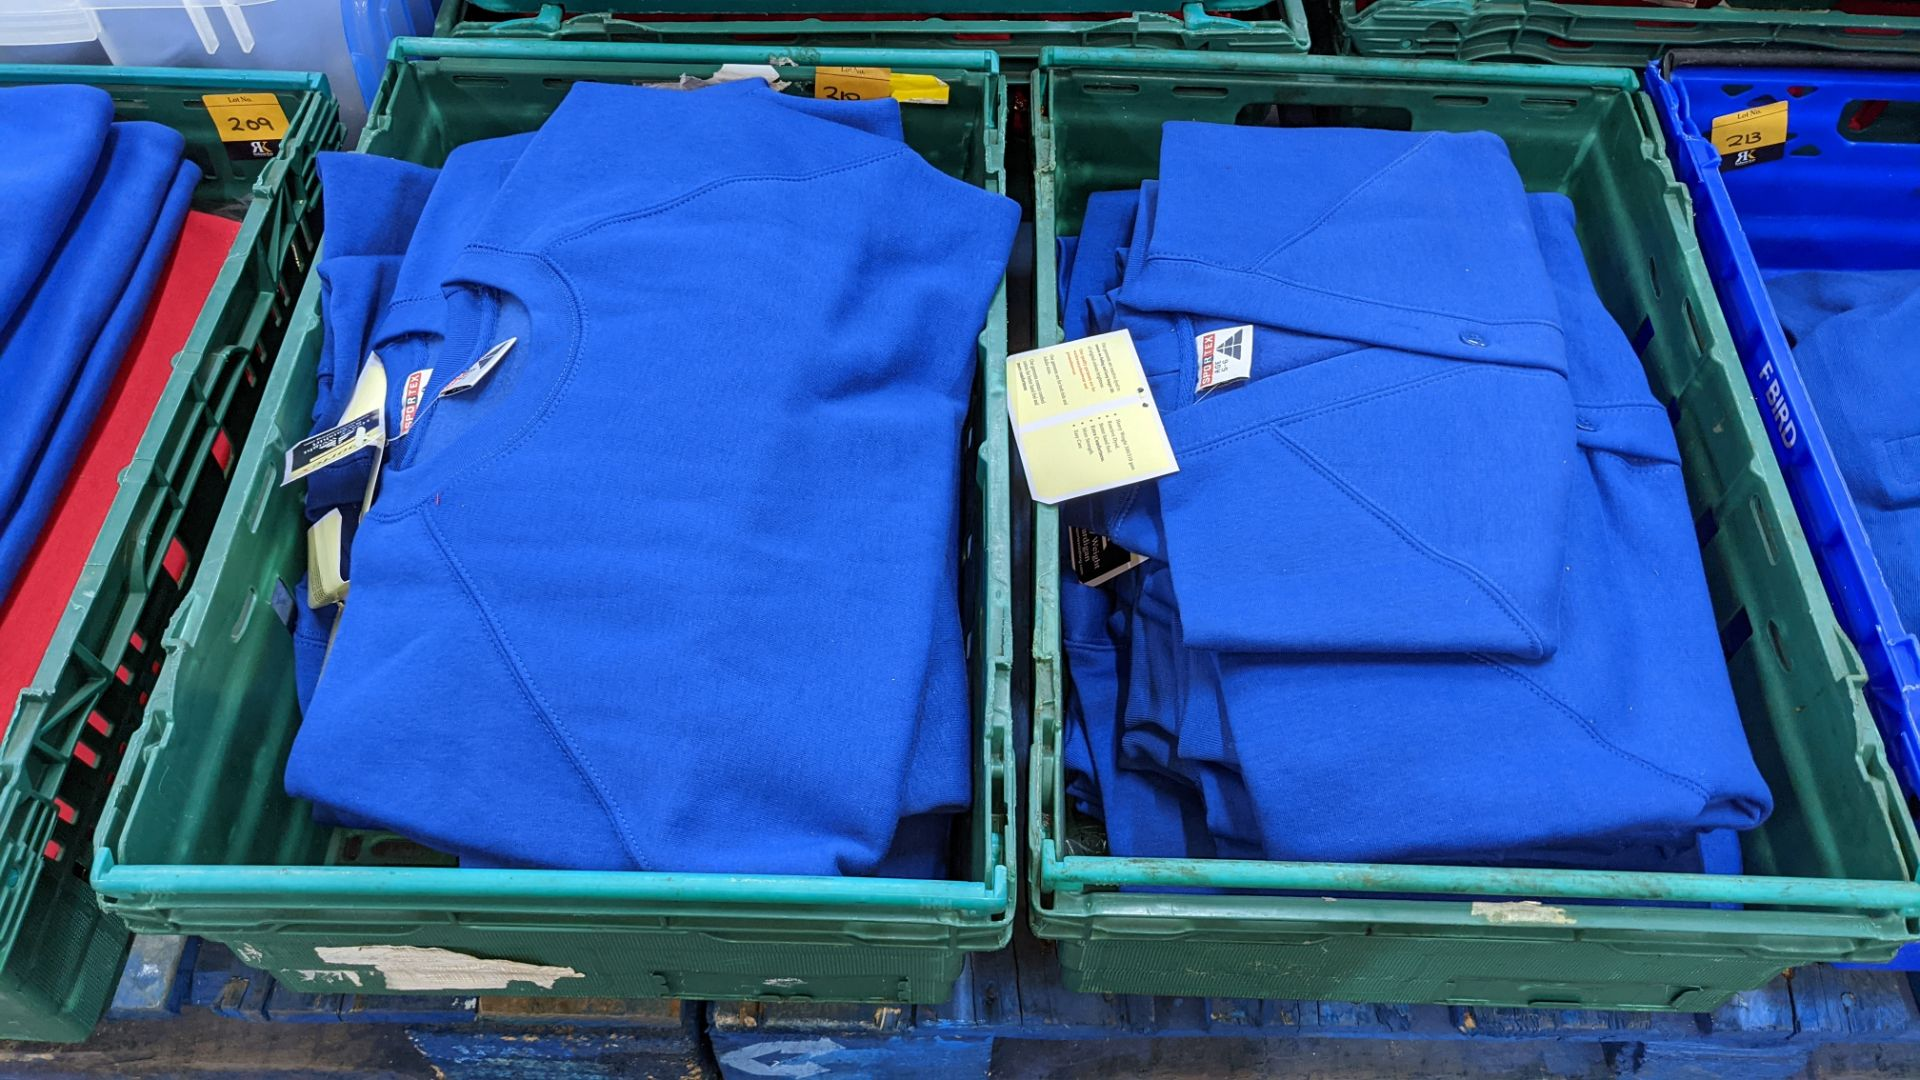 Approx 15 off Sportex children's assorted sweatshirts - the contents of 2 crates. NB crates exclude